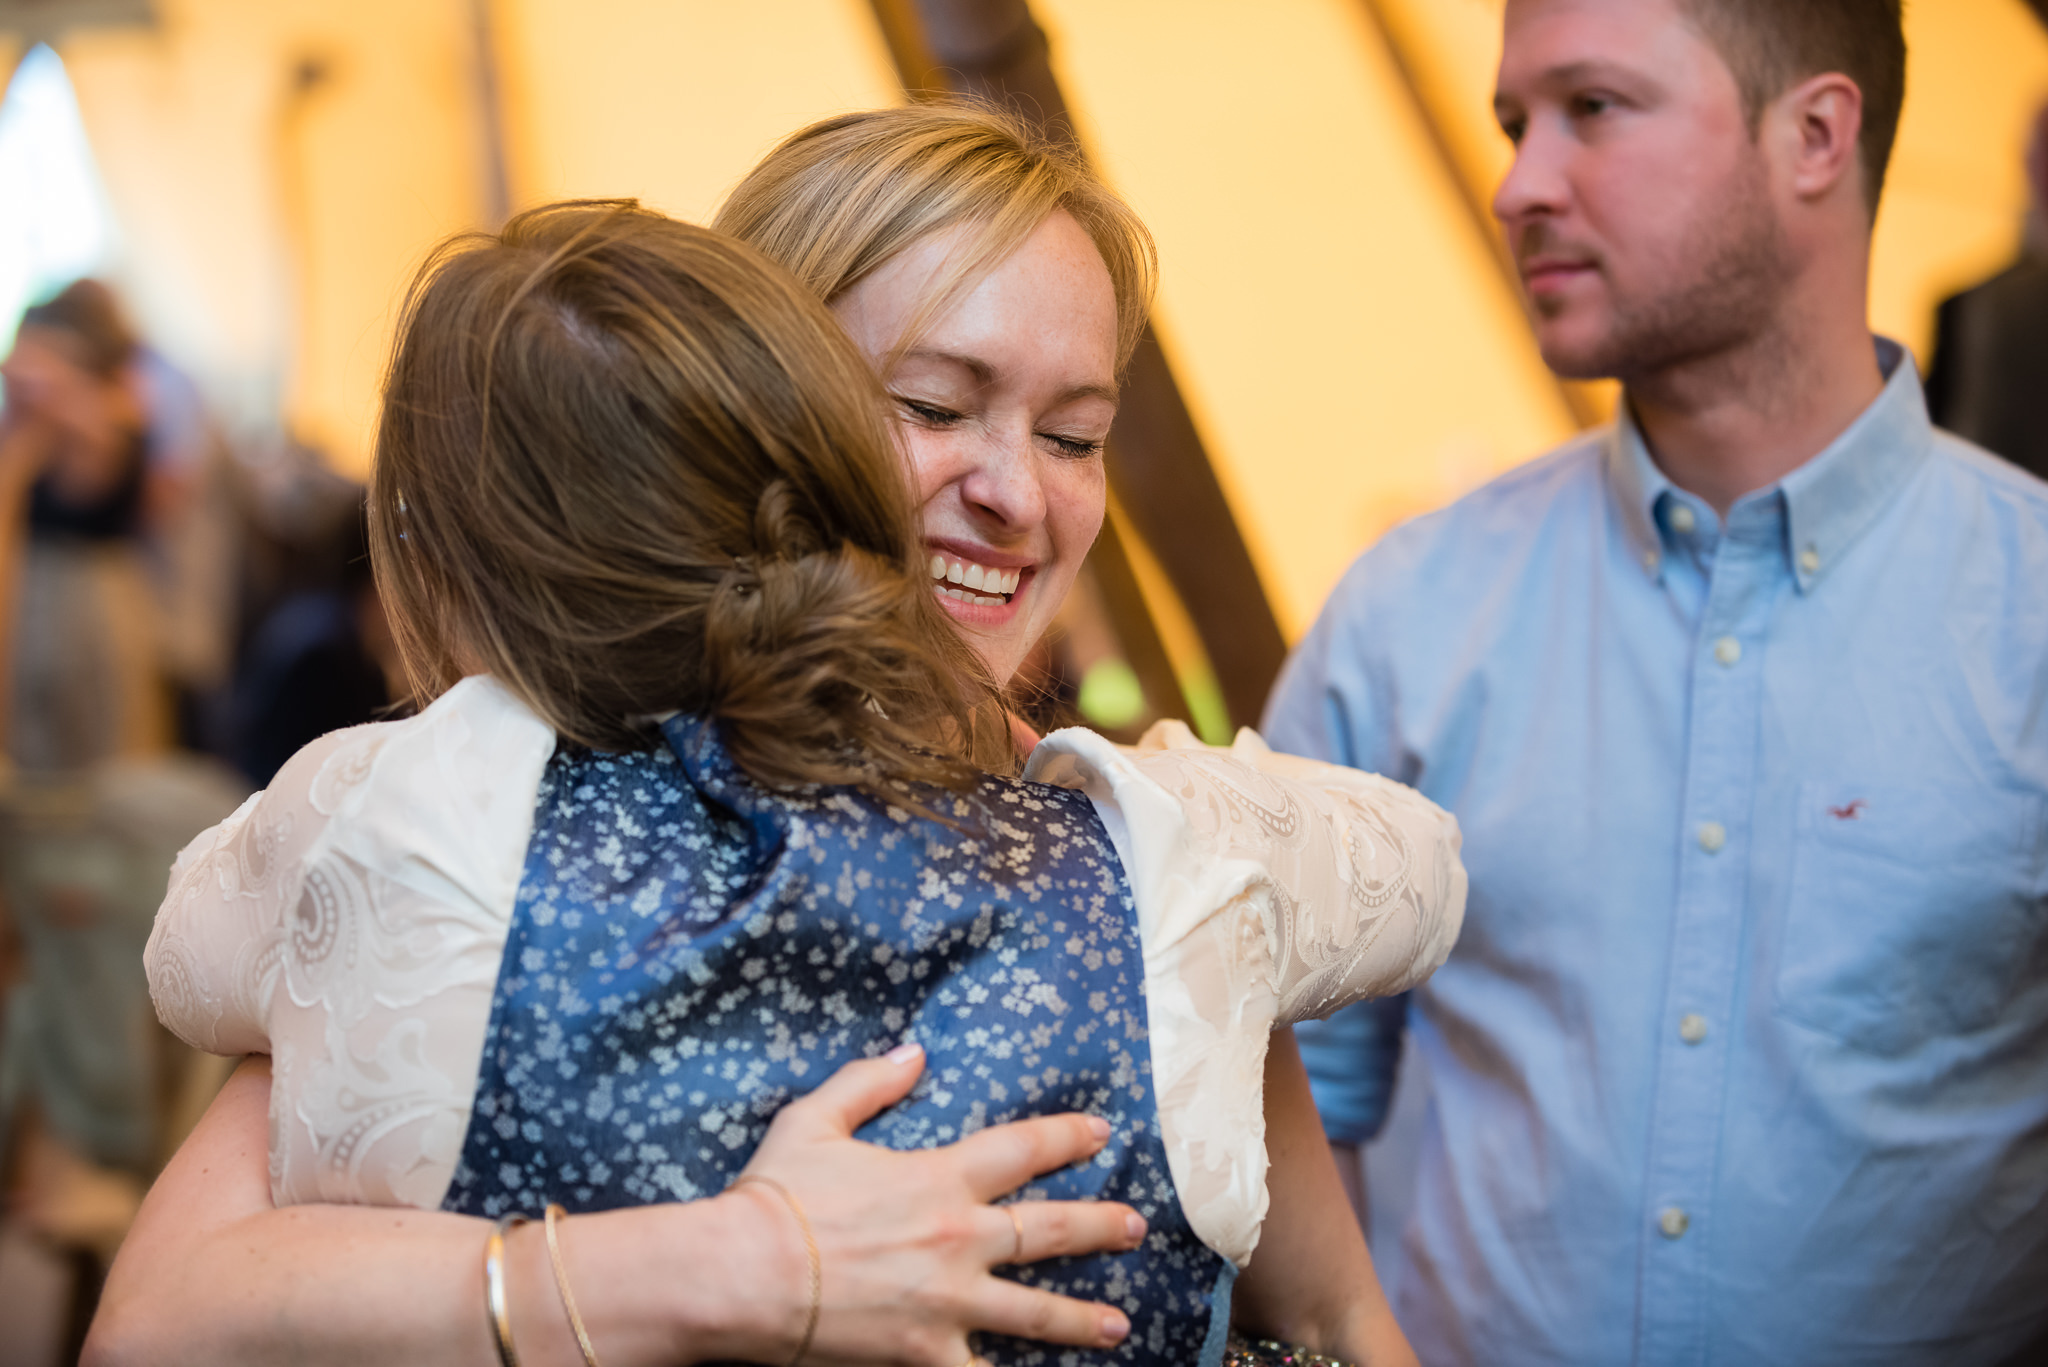 The bride and her sister hug